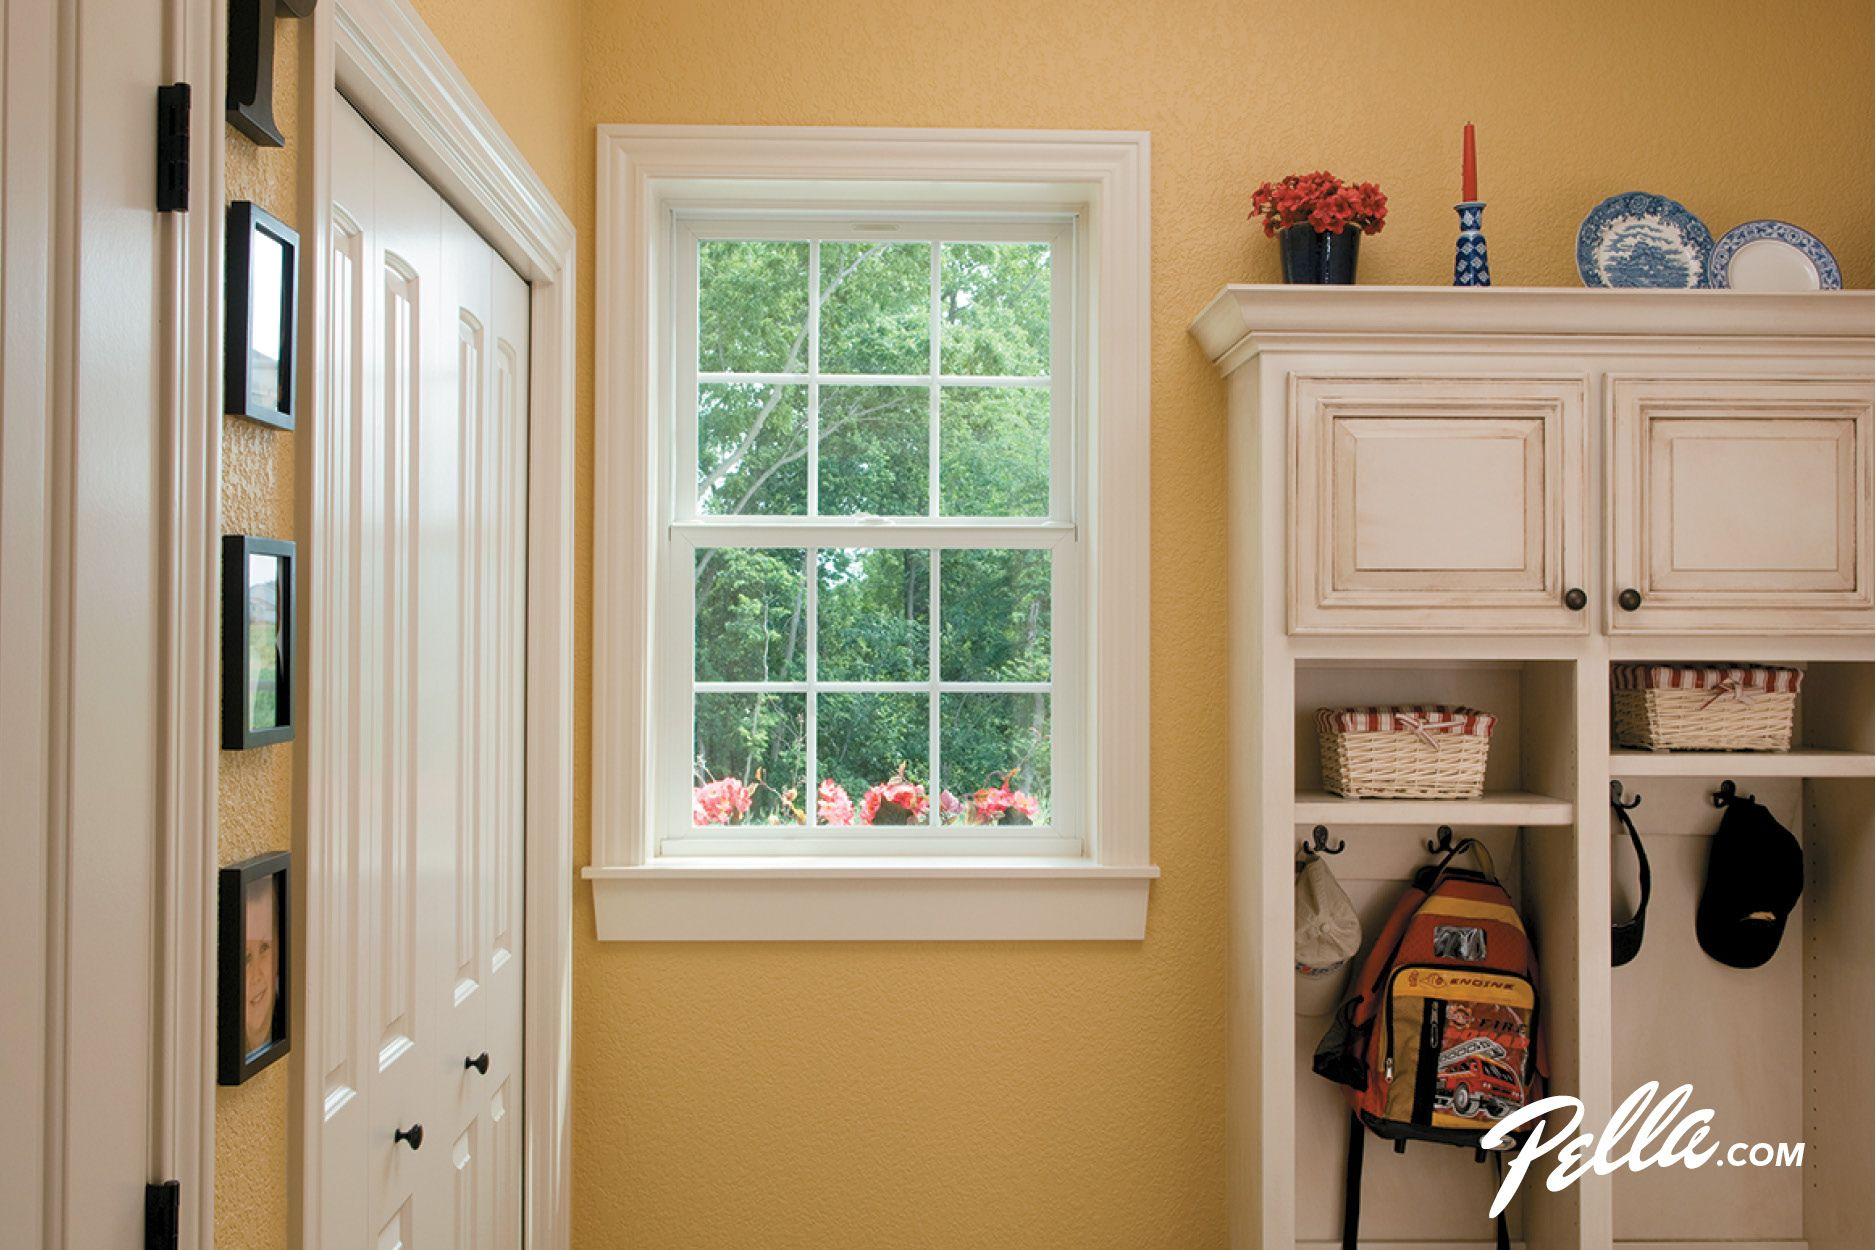 pella windows nj durable pella impervia fiberglass windows stand up to extreme heat or cold damaging uv rays and harsh sea air making it natural choice for